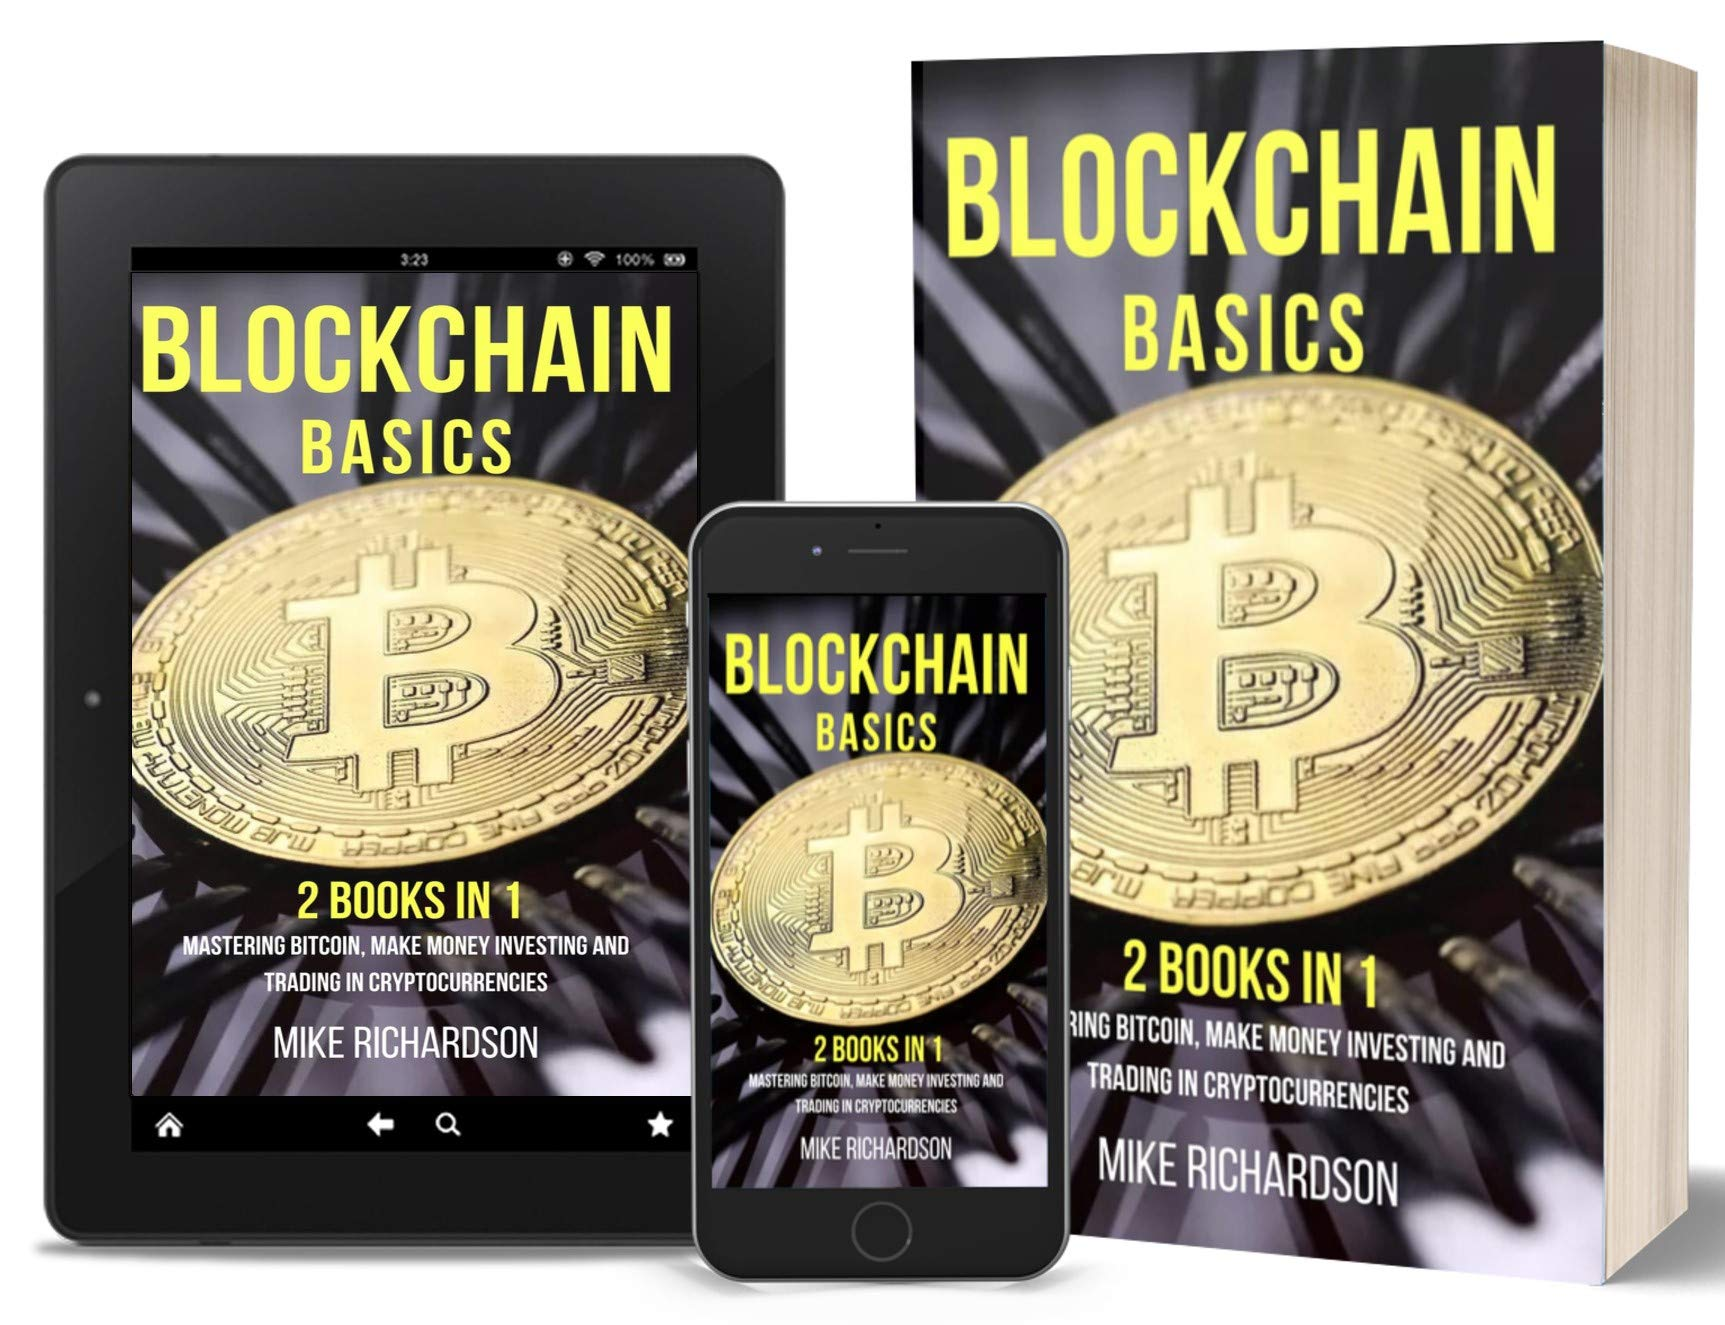 Blockchain Basics: 2 Books In 1, Mastering Bitcoin, Make Money Investing And Trading In Cryptocurrencies (Work From Home B...